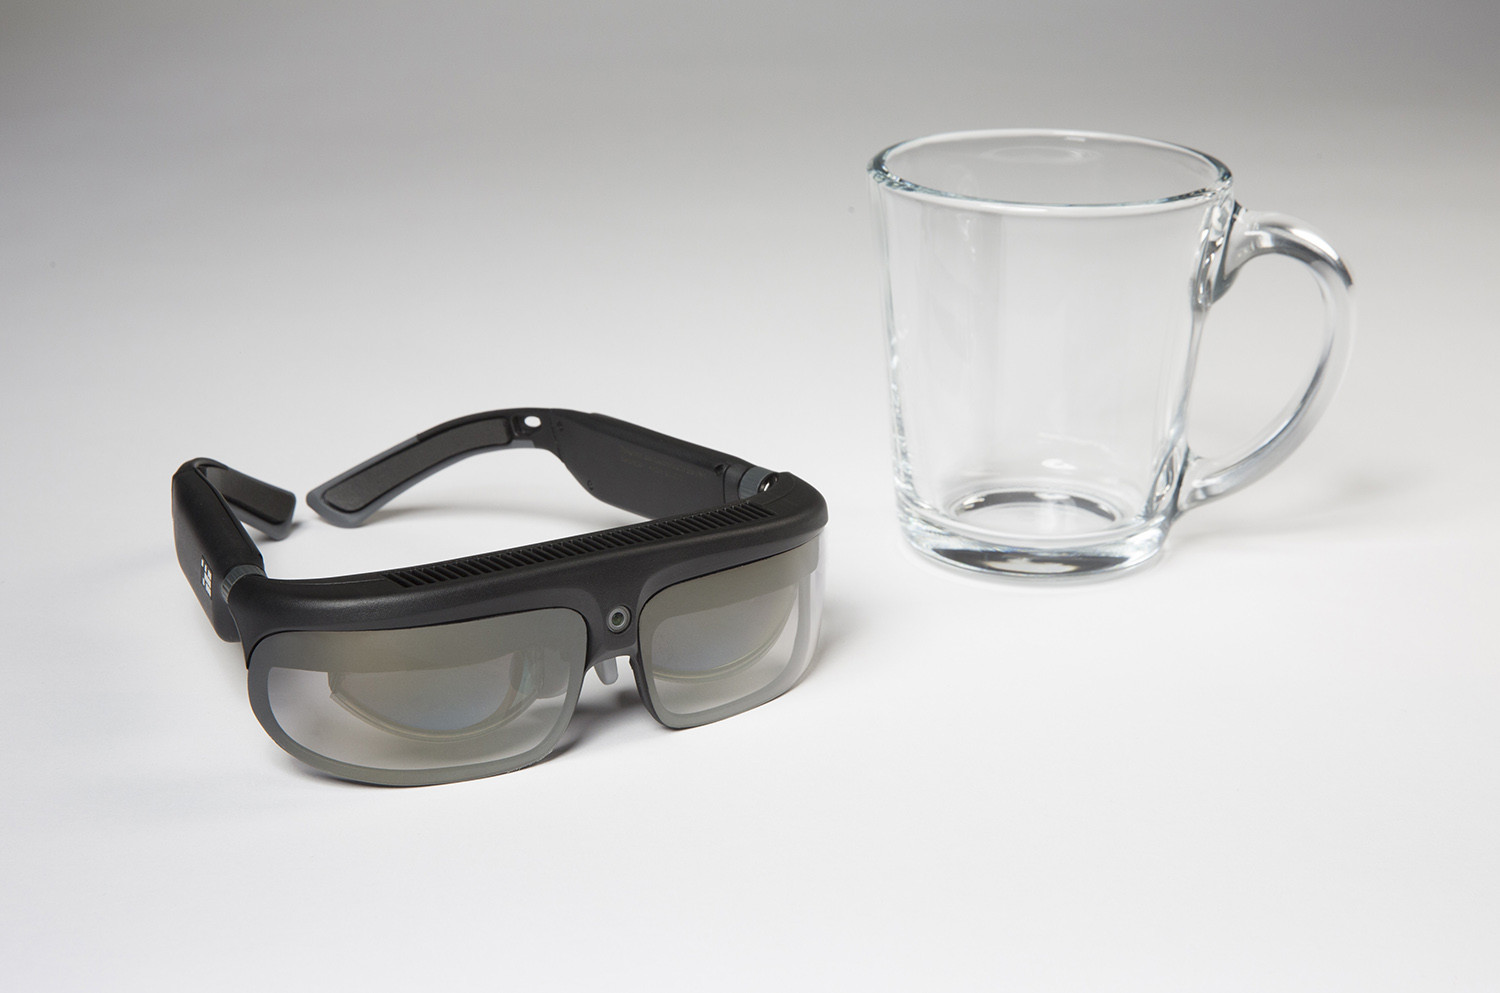 1483595754_odg-r-8-augmented-reality-smartglasses-scale-photo.jpg